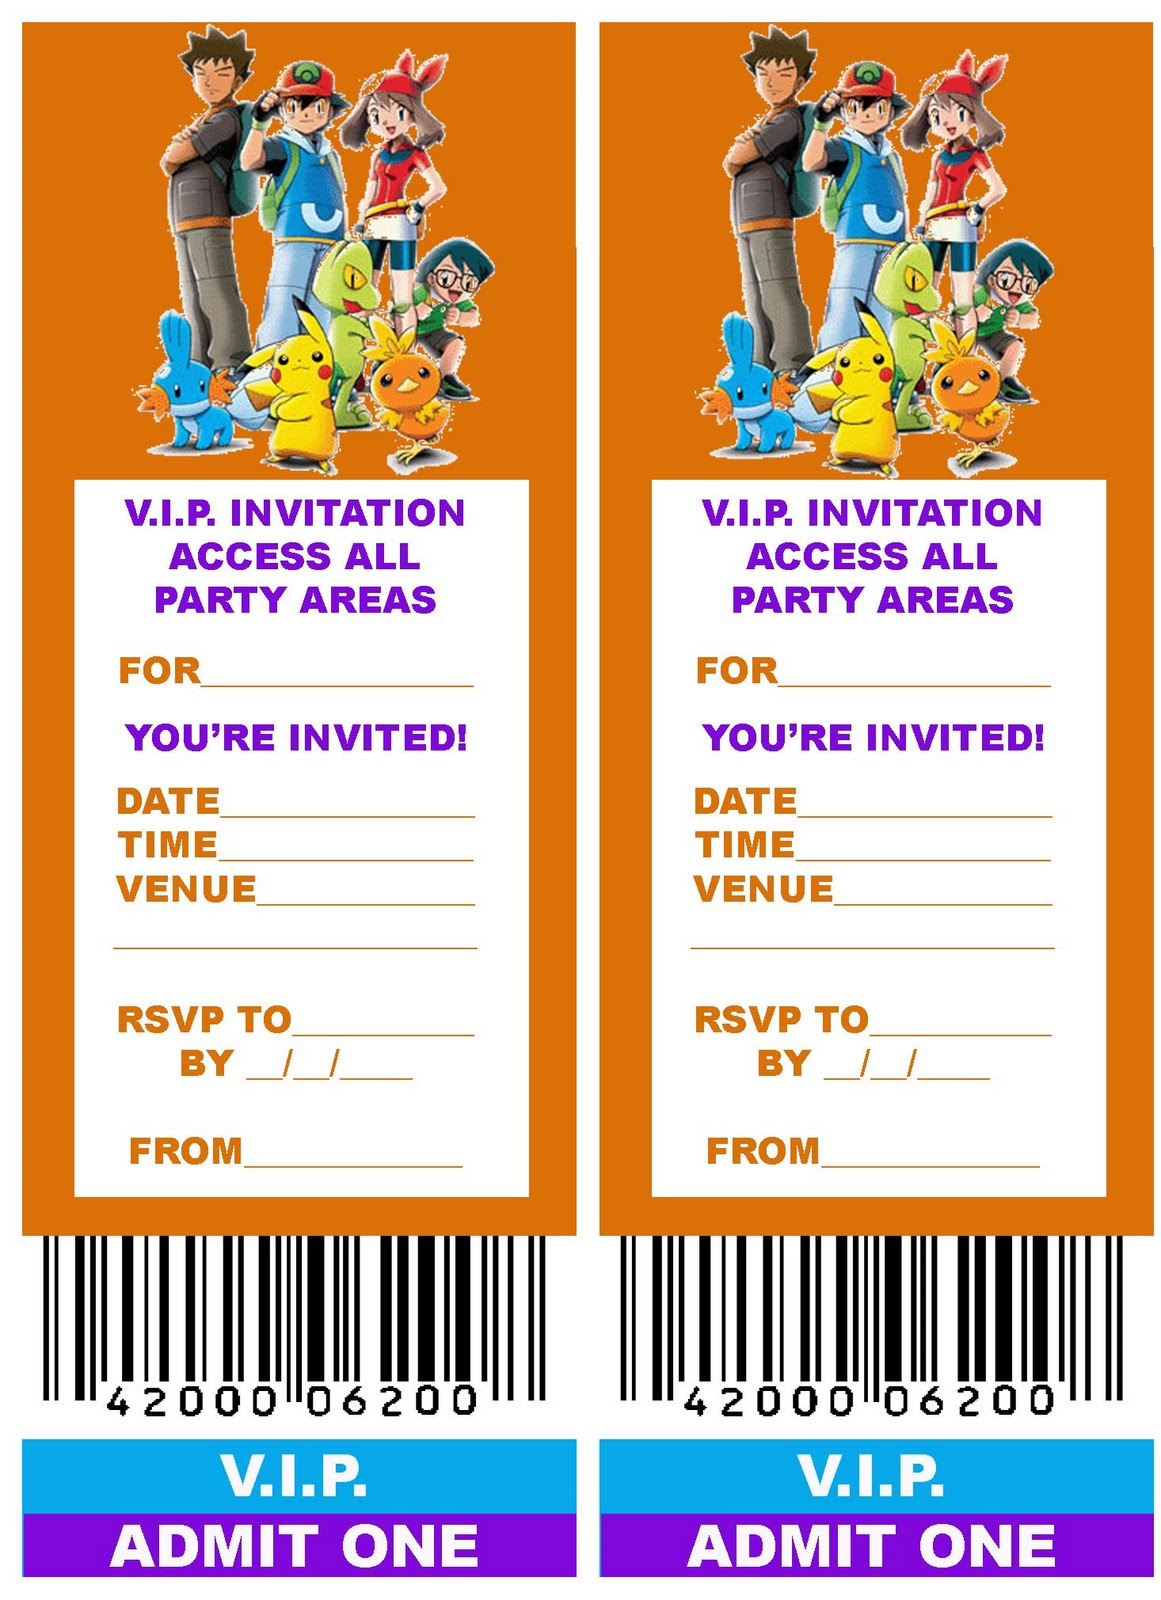 Chuck E Cheese Birthday Invitation Template with perfect invitation layout